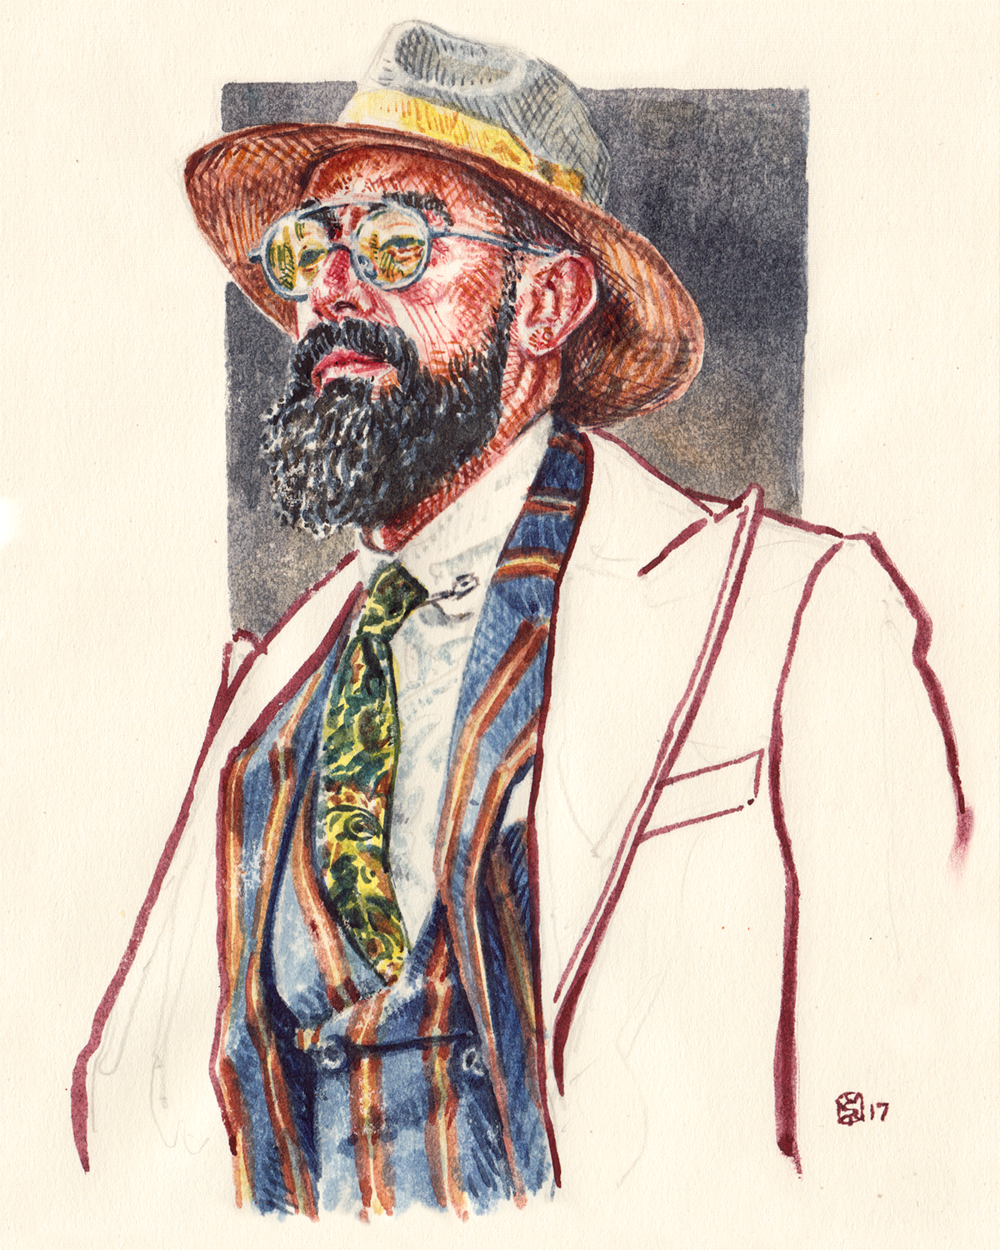 Men's fashion illustration of Paulo Battista, member of Portuguese Dandies